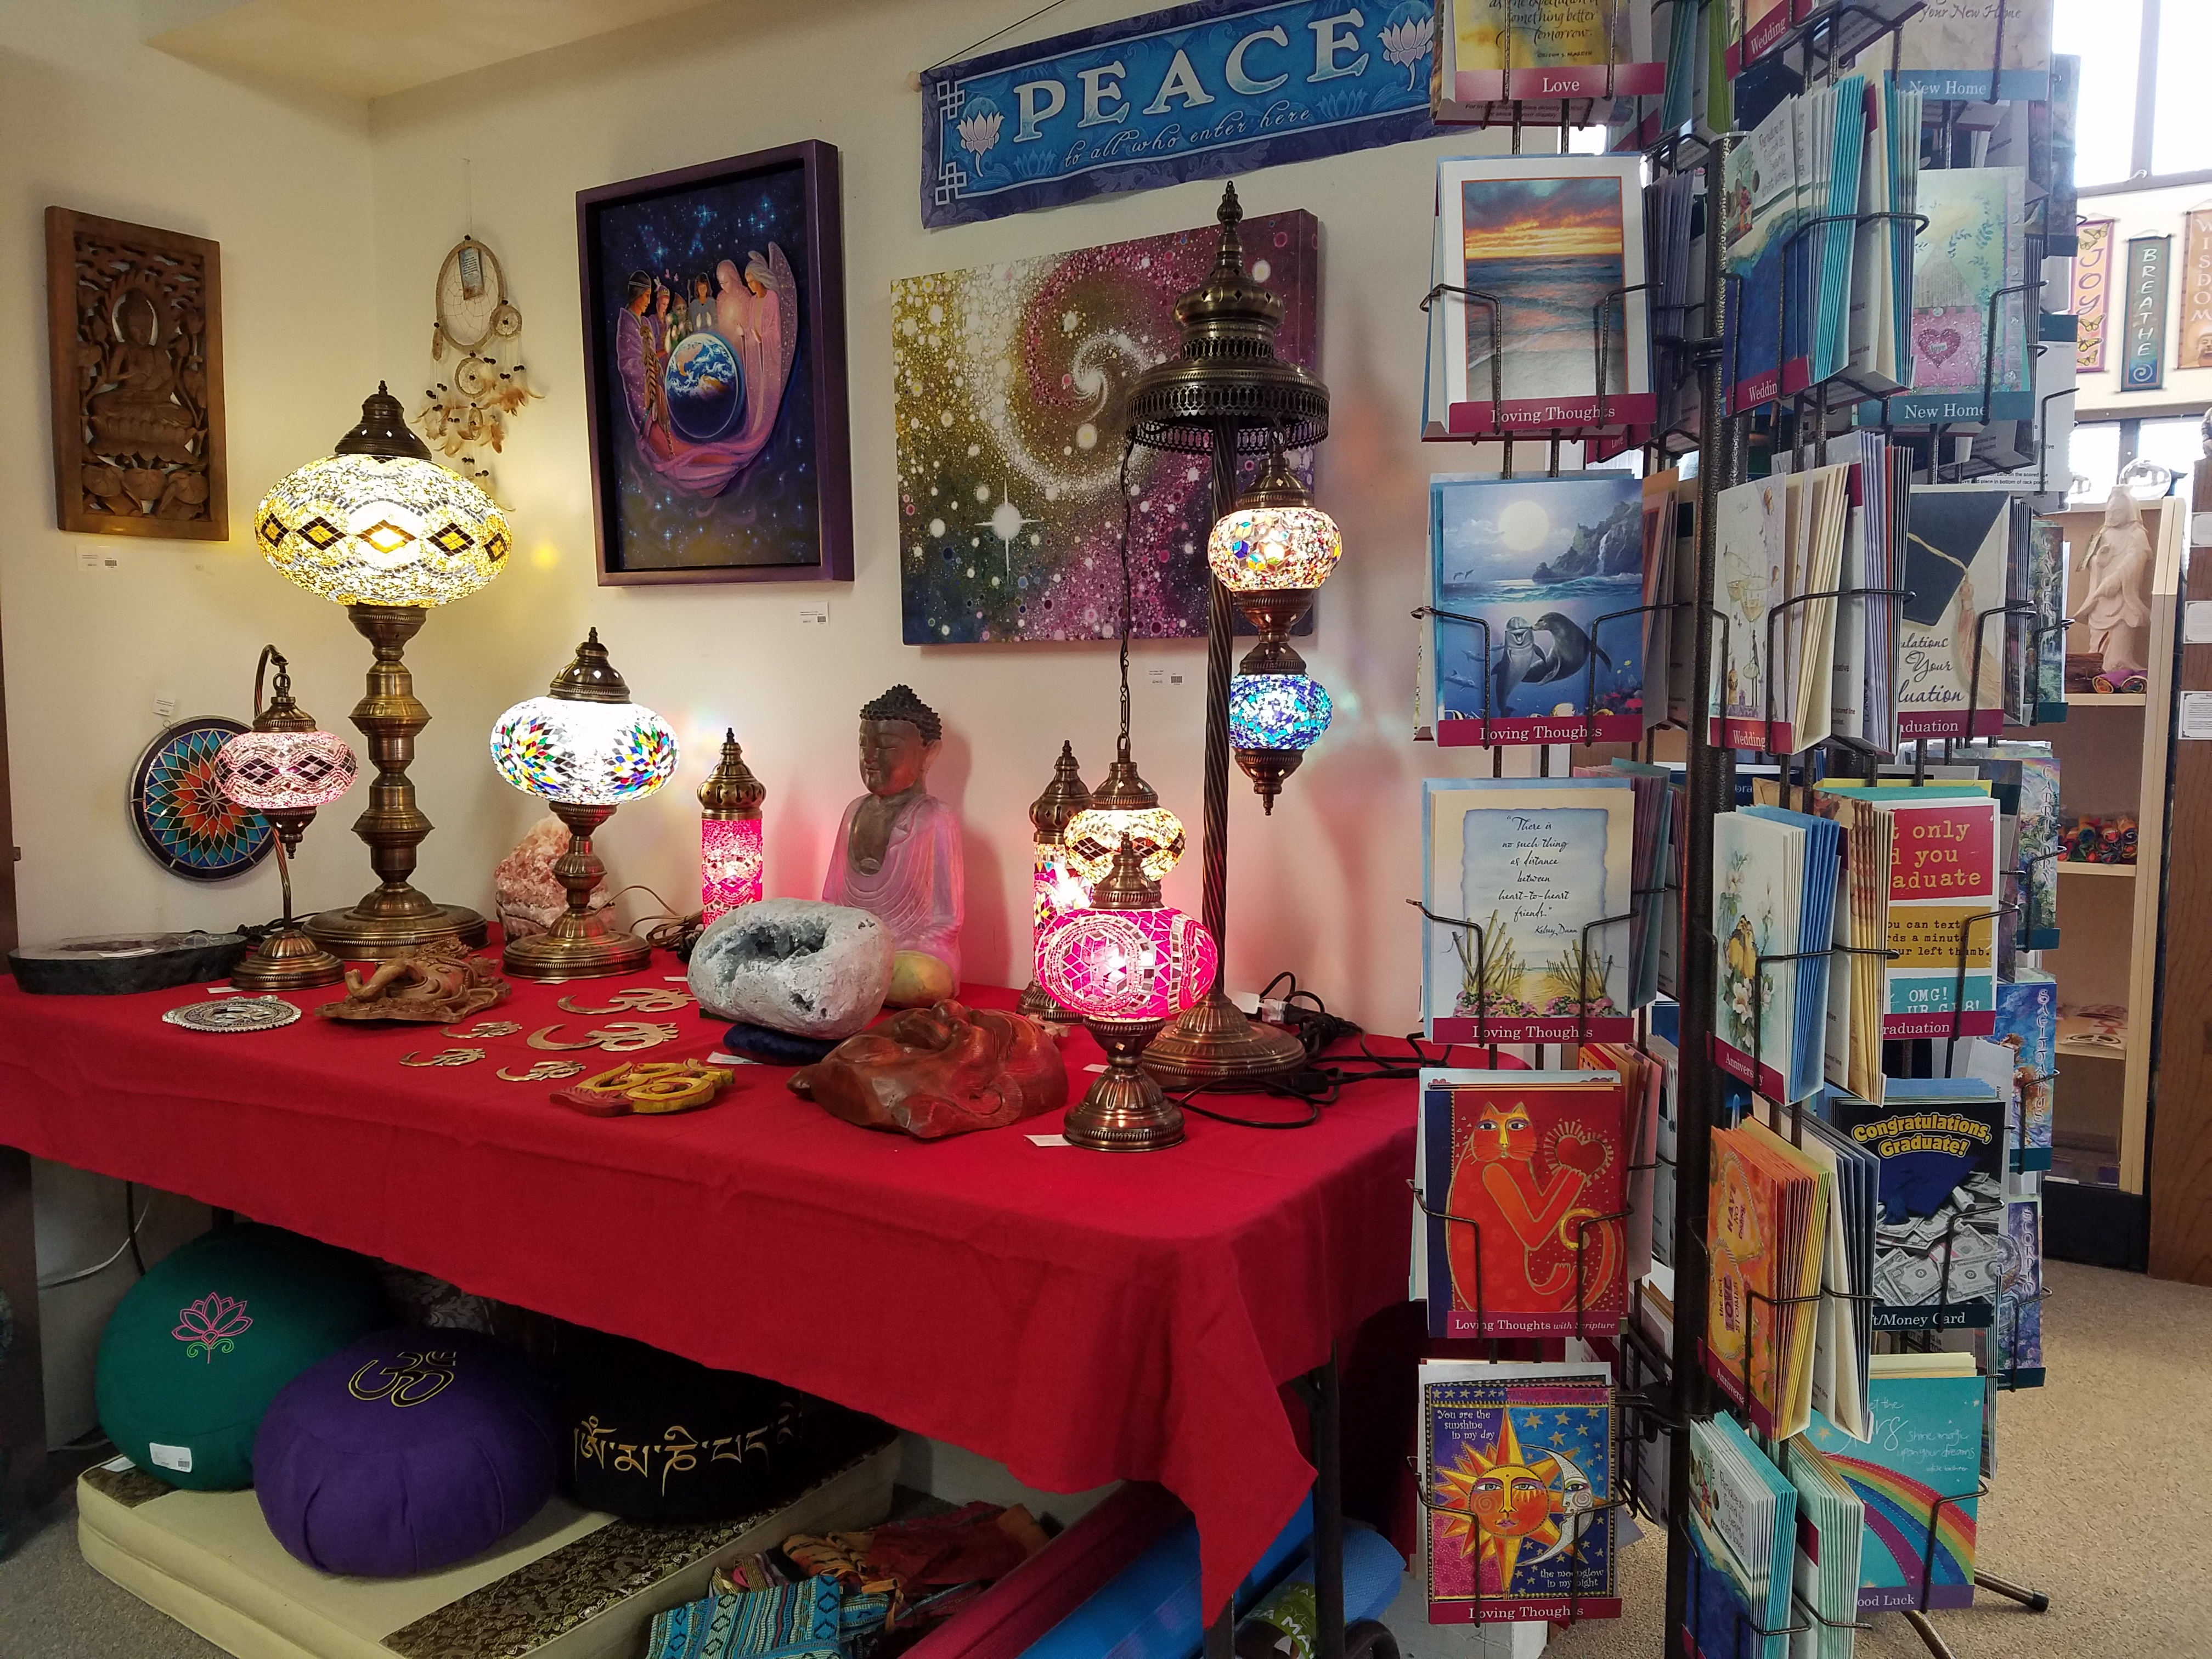 aquarius books and gifts grants pass oregon decorative lighting